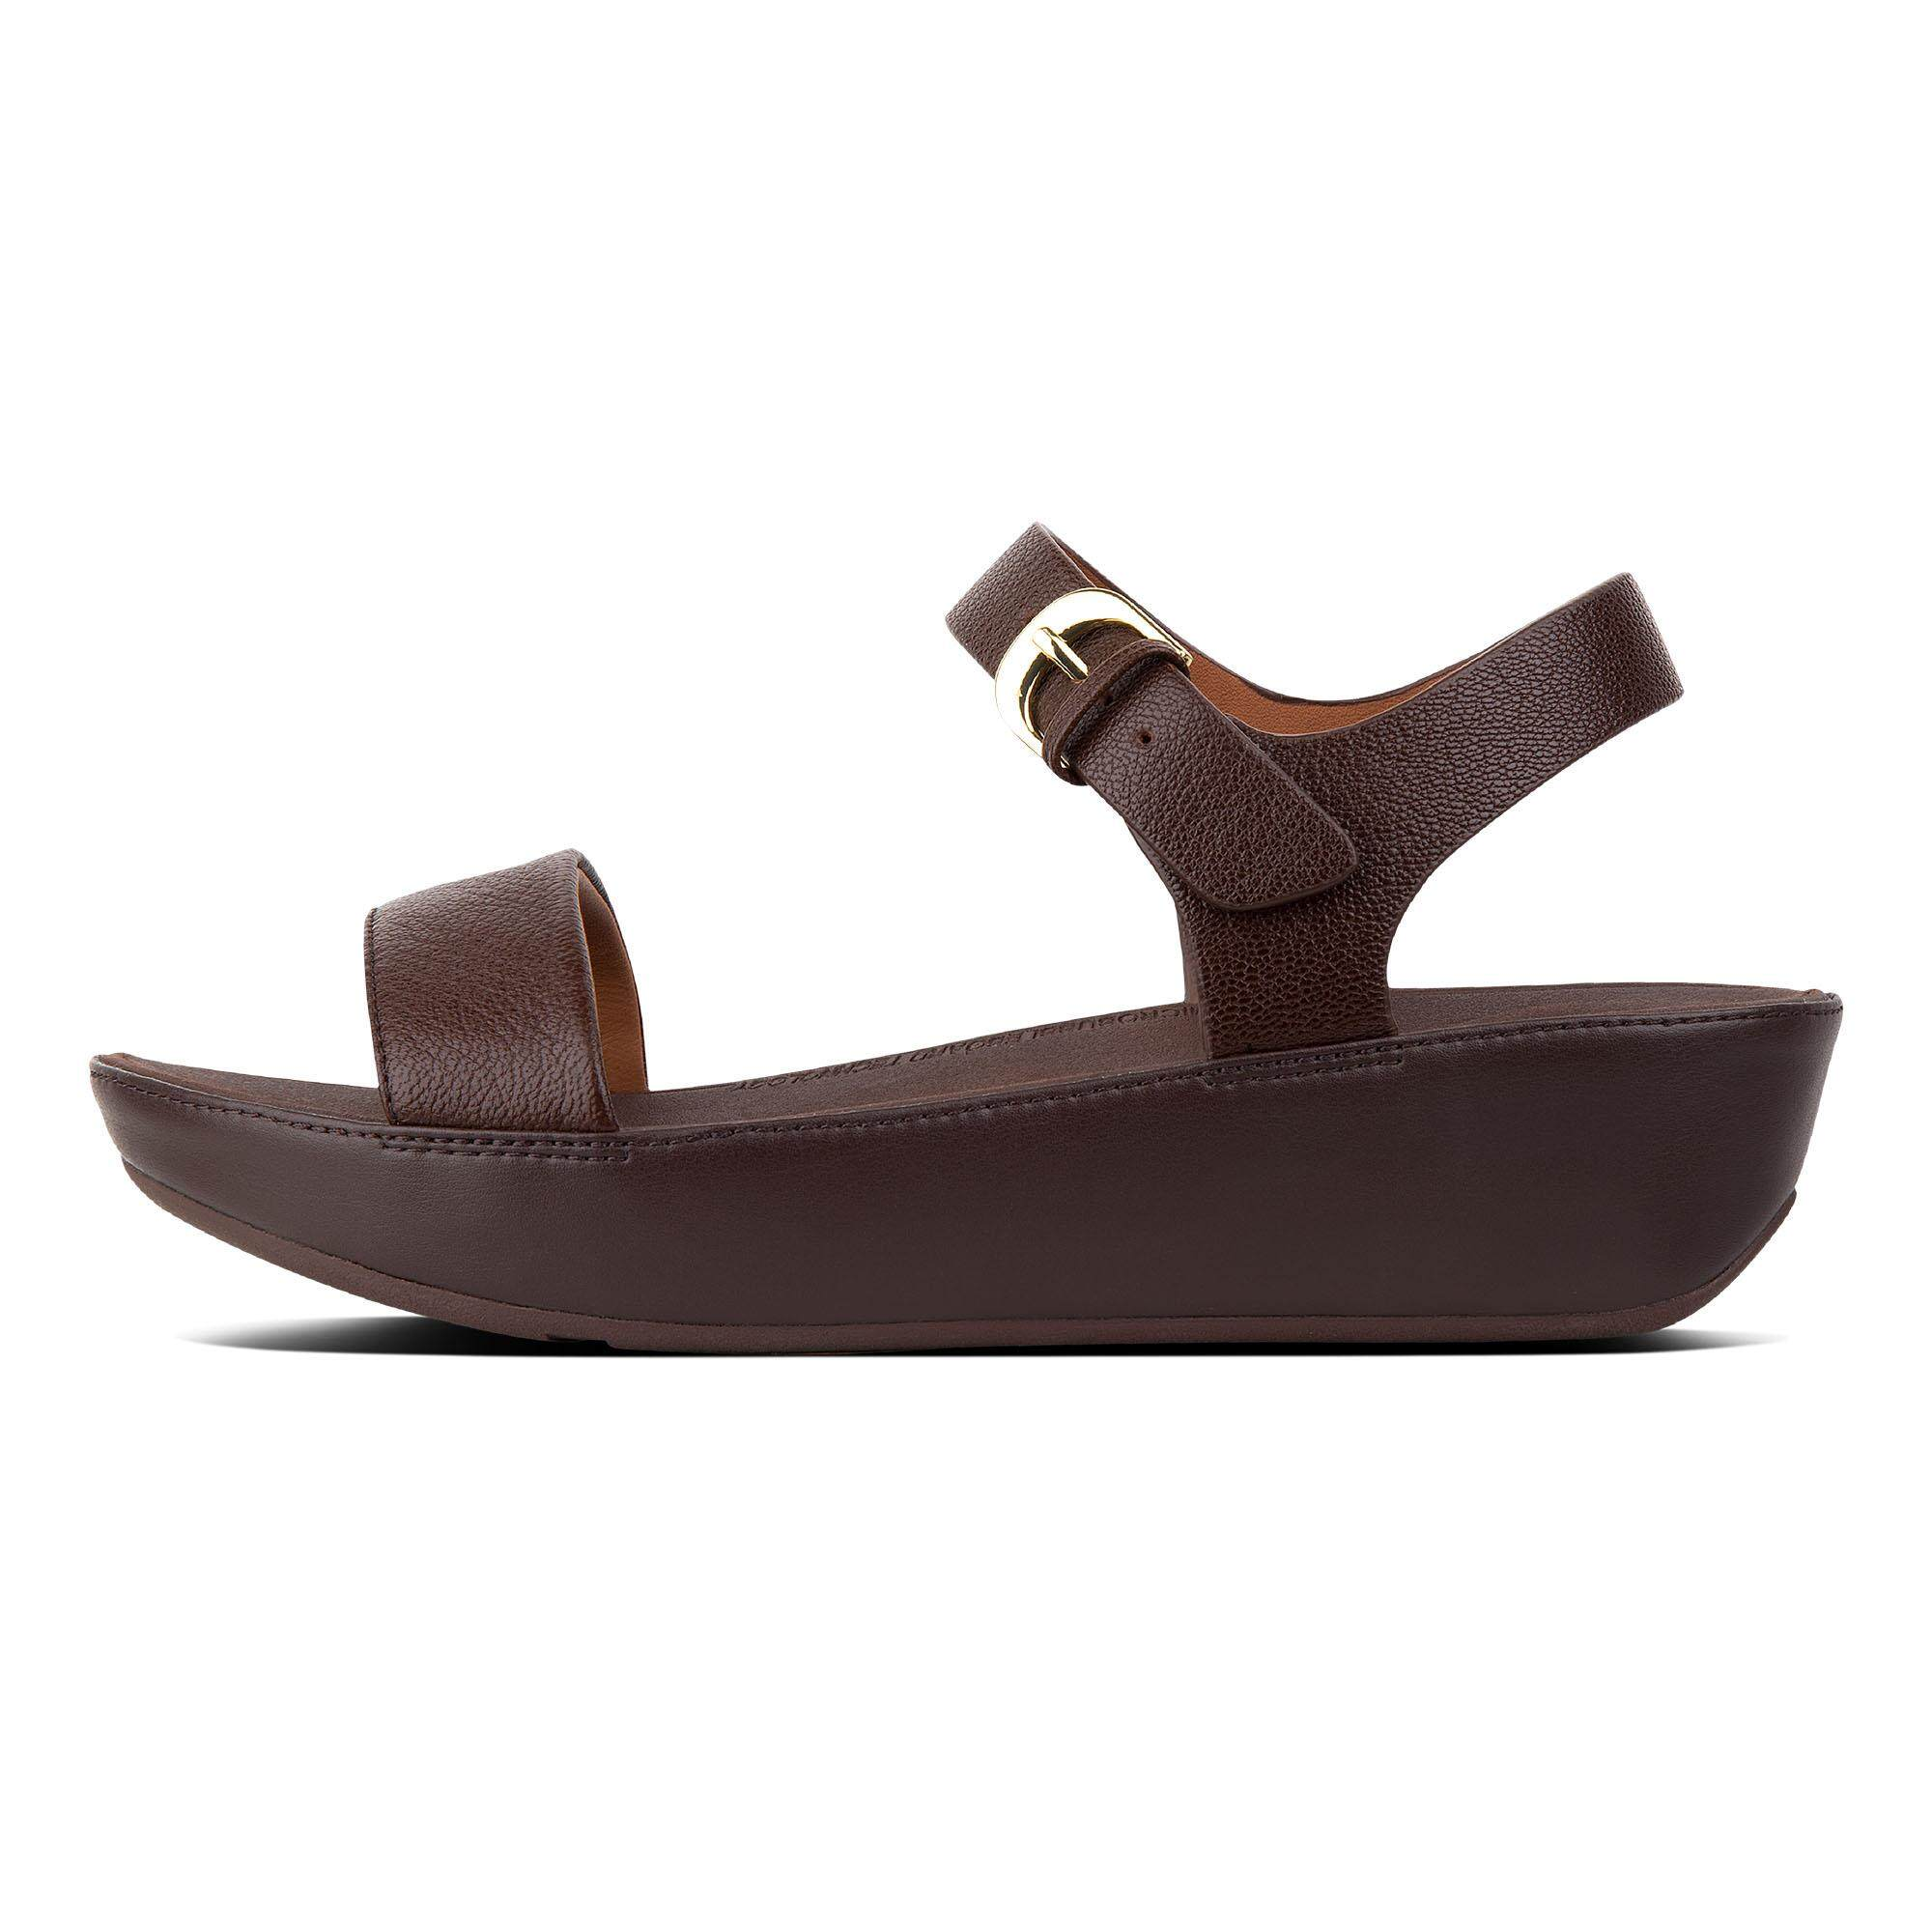 8b90ebfa5a25 FitFlop Women s Sandals price in Malaysia - Best FitFlop Women s ...